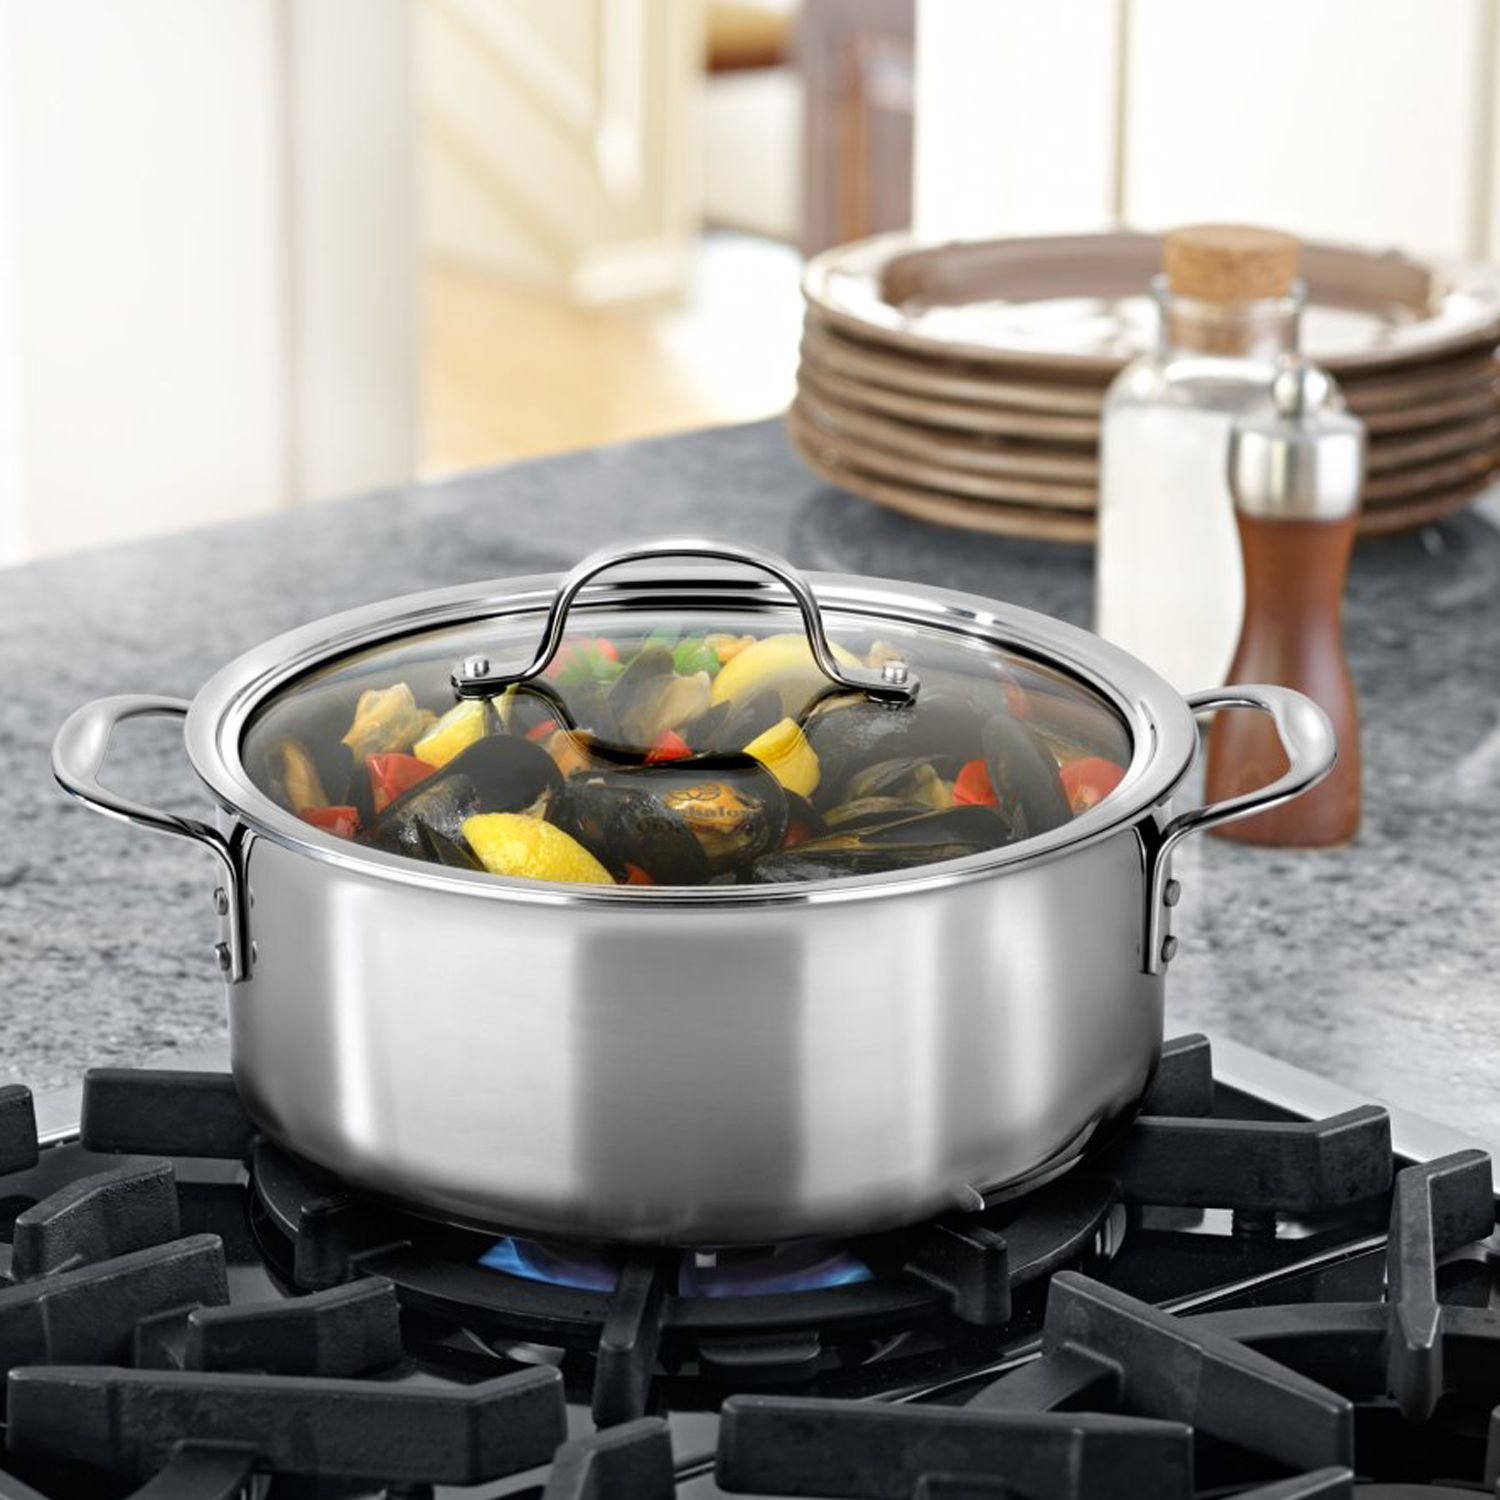 Tri-Ply Stainless Steel 5-qt. Covered Dutch Oven